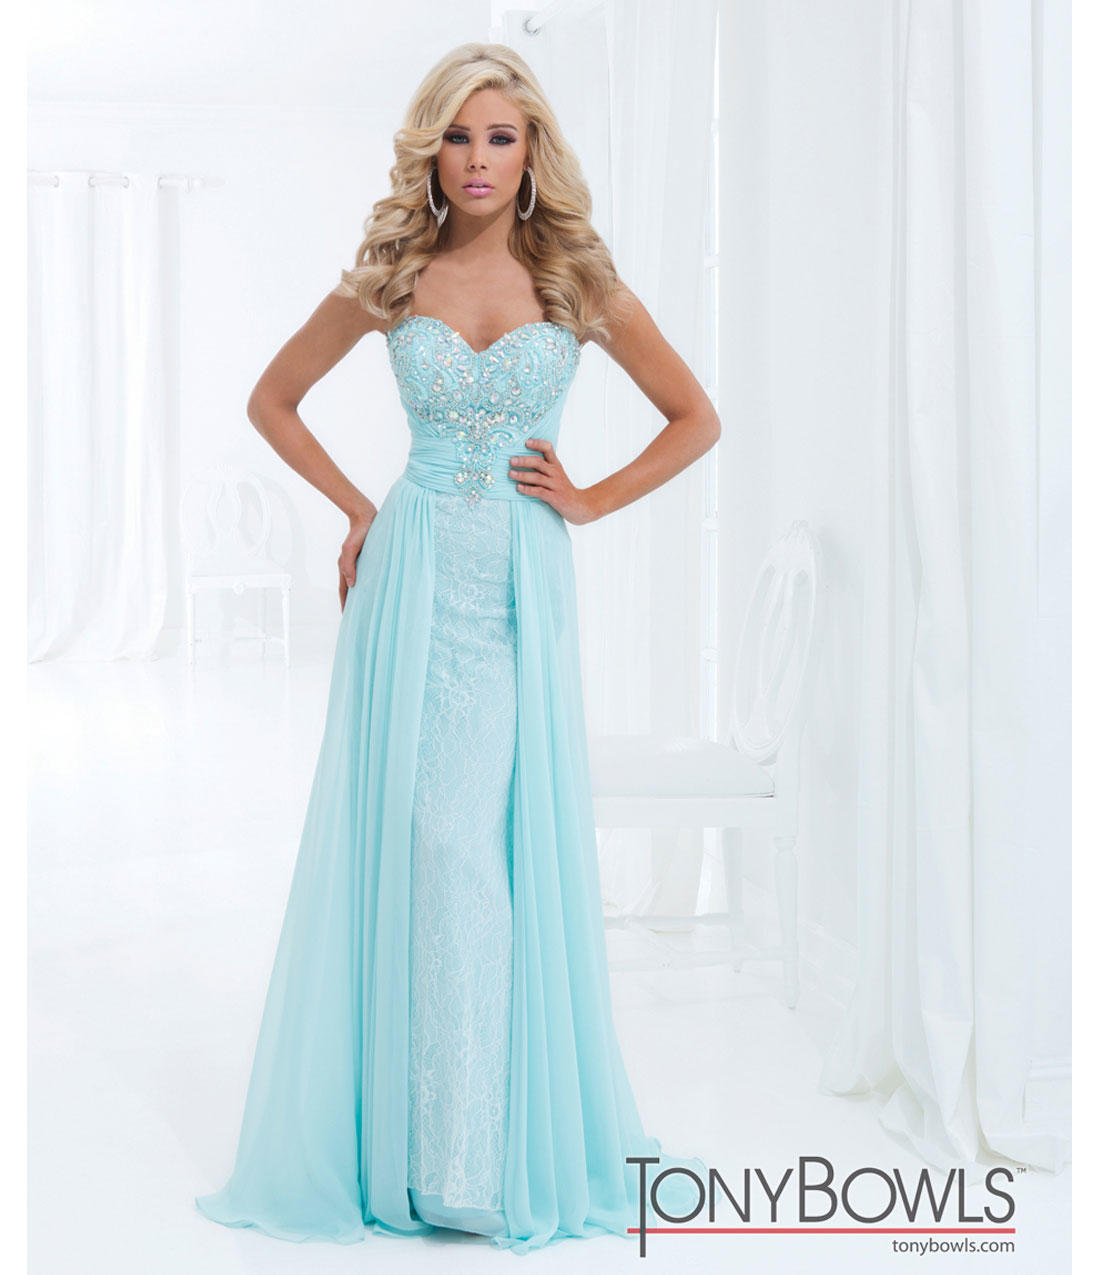 (PRE-ORDER) Tony Bowls 2014 Prom Dresses From Unique Vintage